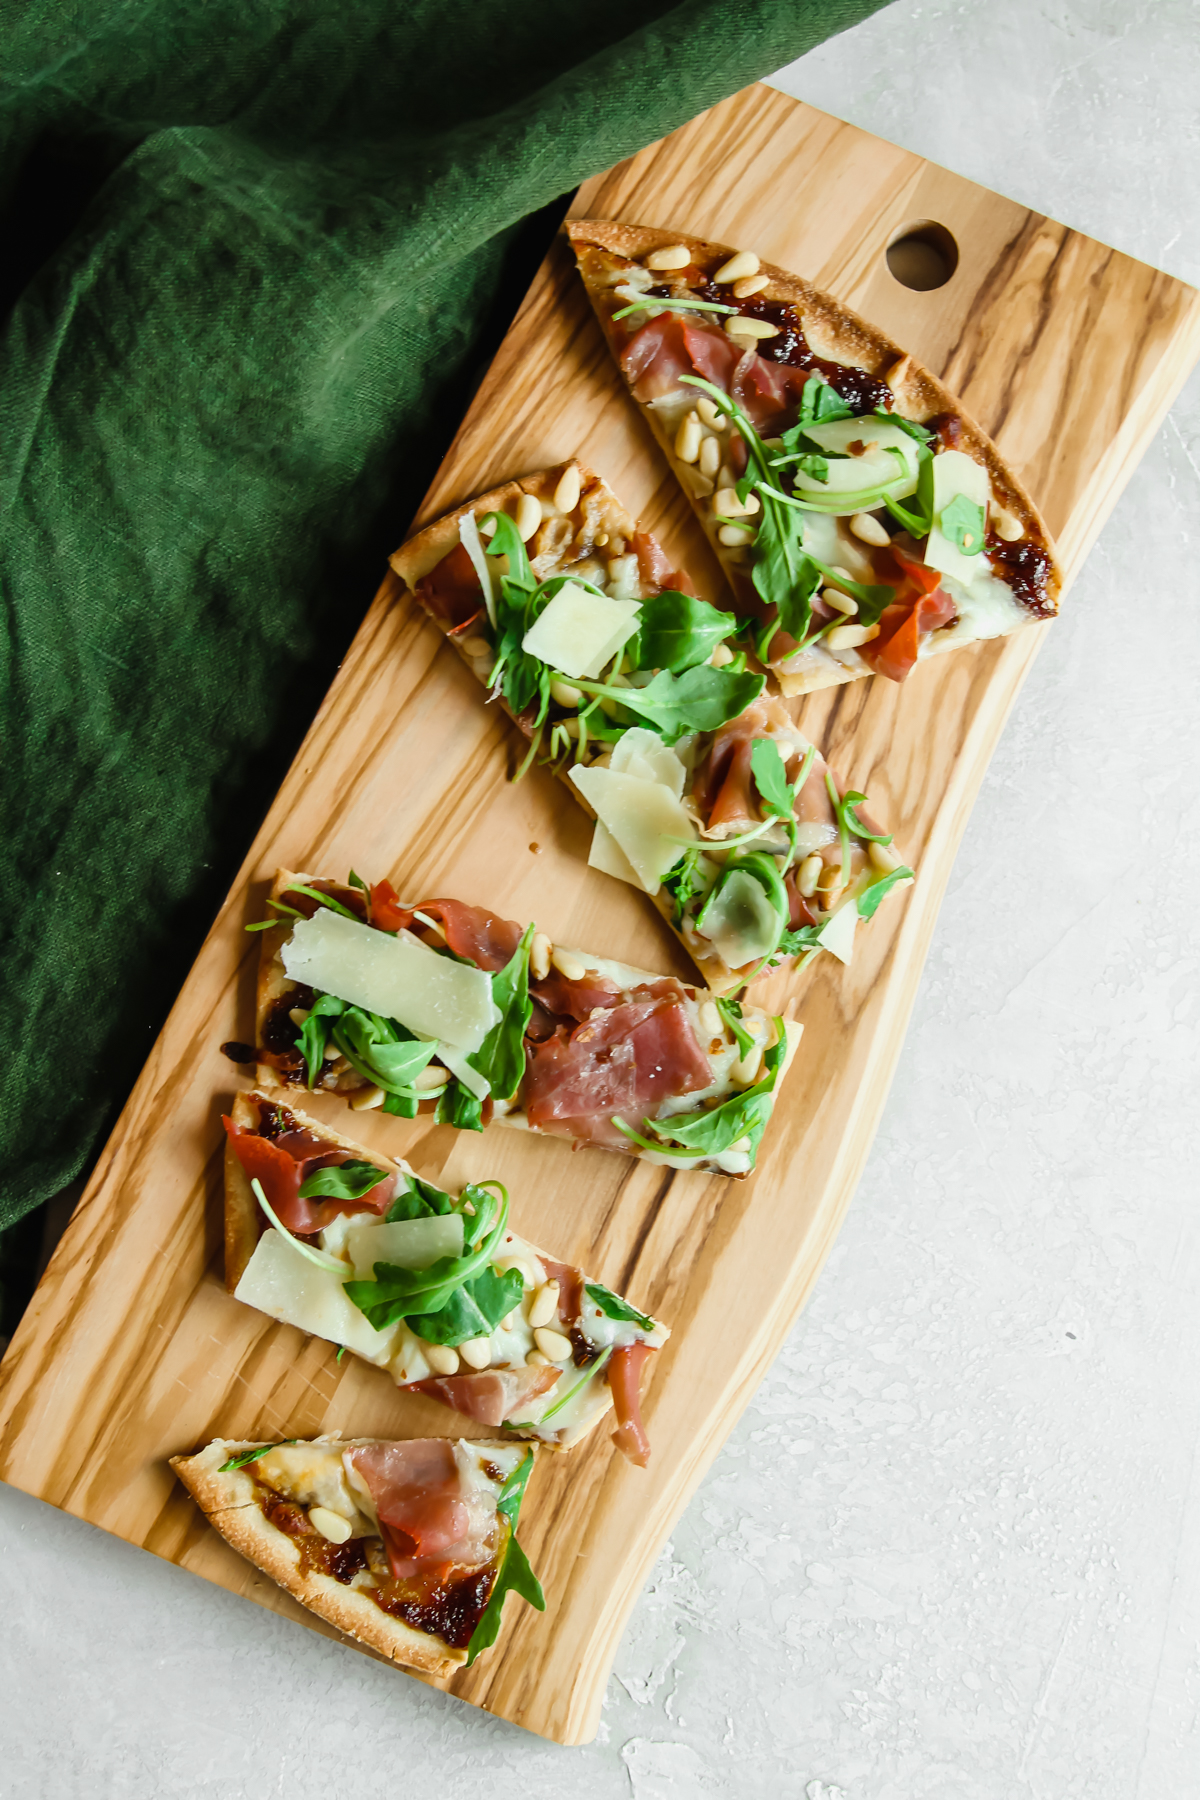 Prosciutto fig arugula flatbread pizza recipe, easy dinner recipe